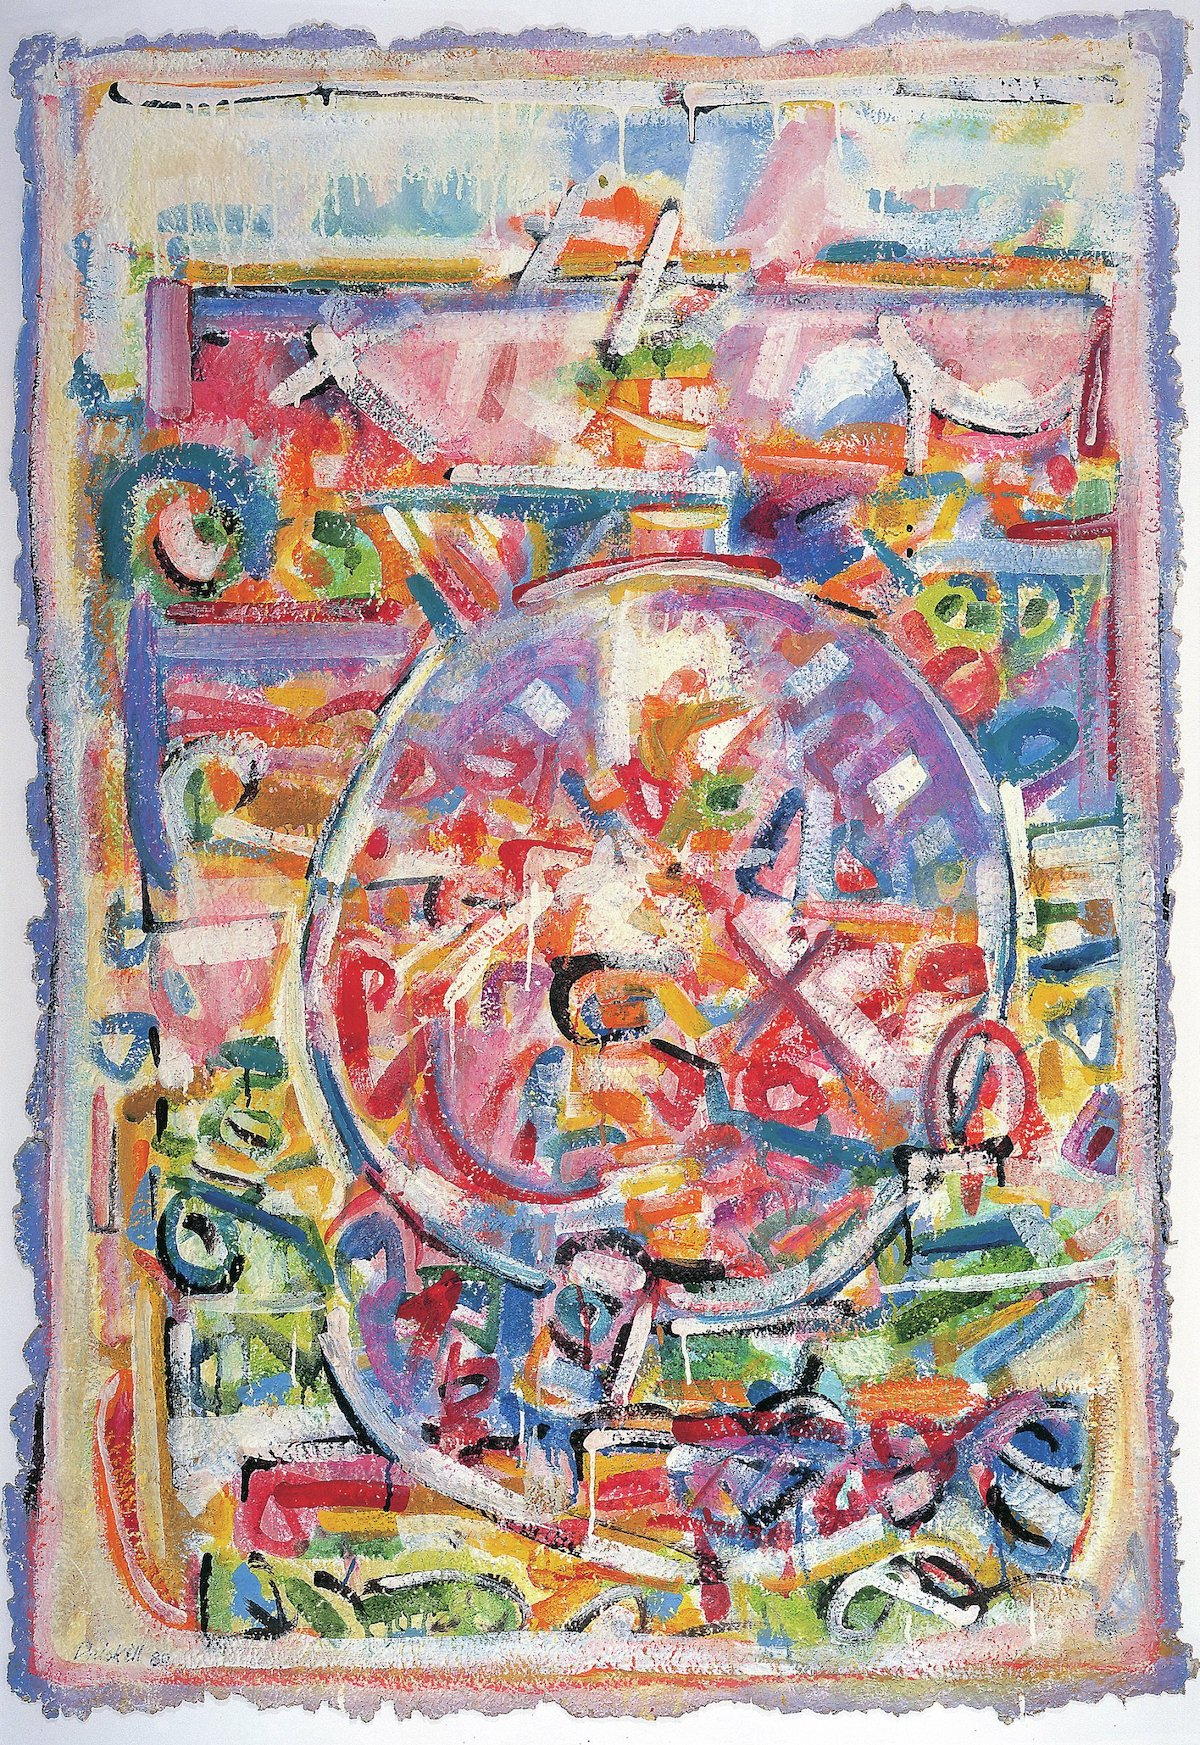 David C. Driskell, 'Yaddo Circle', 1980. A swirling mass of white, purple, green, yellow, and red lines centers around a circle.